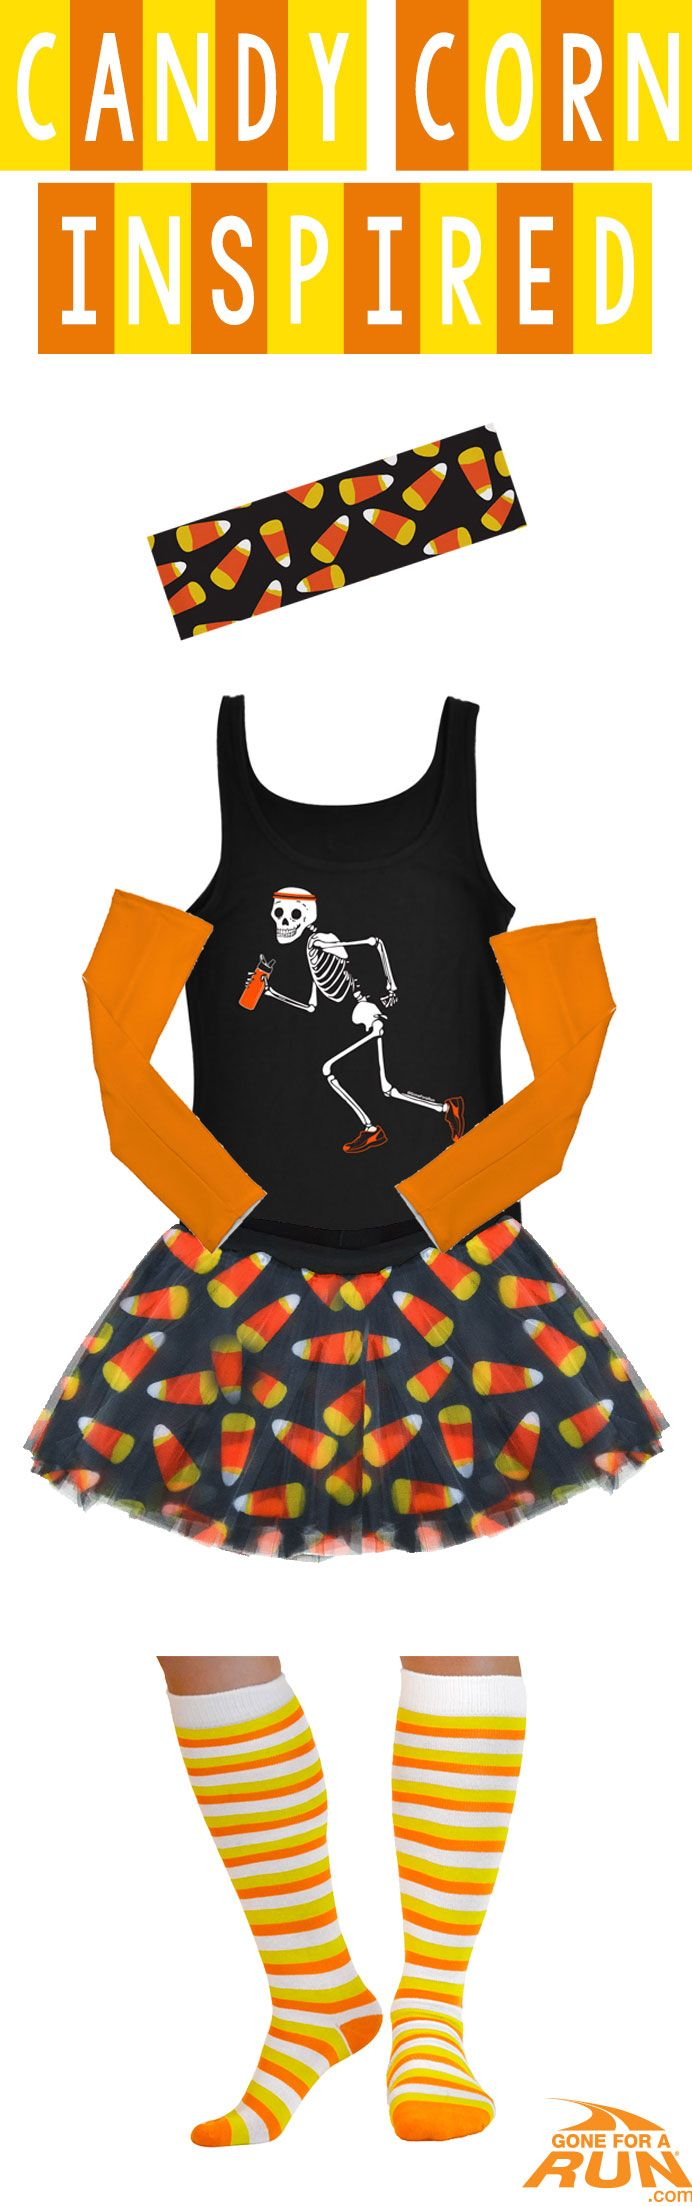 Trick or treat? More like trick or run! Get in the #Halloween spirit with our Halloween inspired running apparel! From shirts to socks and more, you'll find something to suit you and your running friends haunted moods! Make up your own costume, or check out one of our original ideas! Make your run as sweet as candy with this Candy Corn inspired Halloween runner's costume!